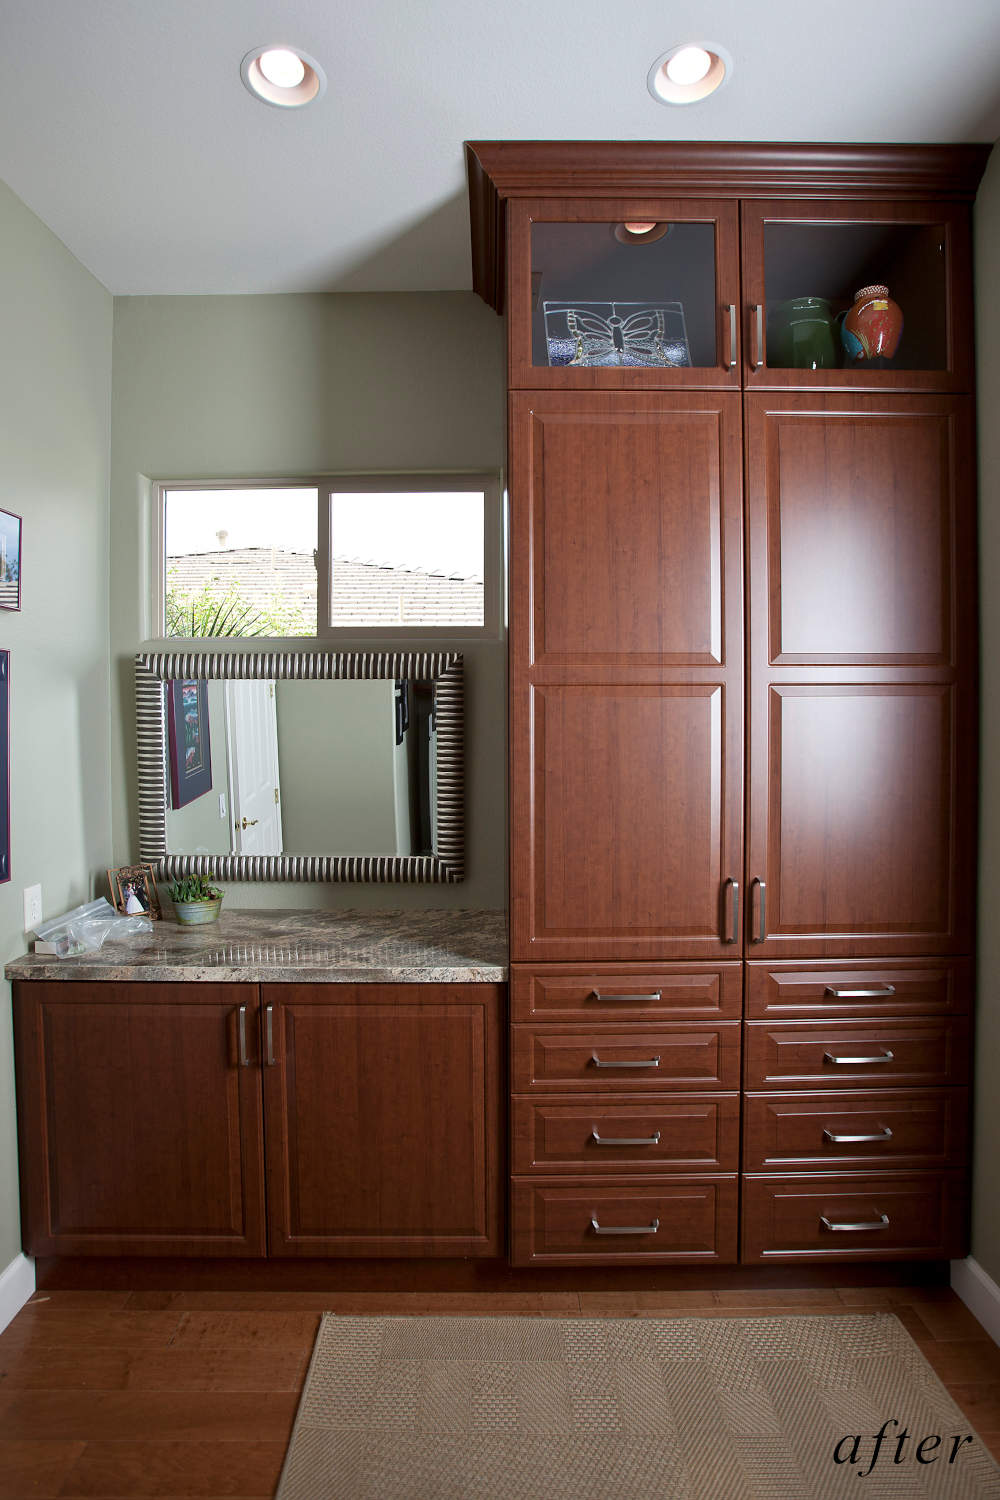 After remodel image: New laundry room with floor to ceiling cherry wood cabinets, granite counters.